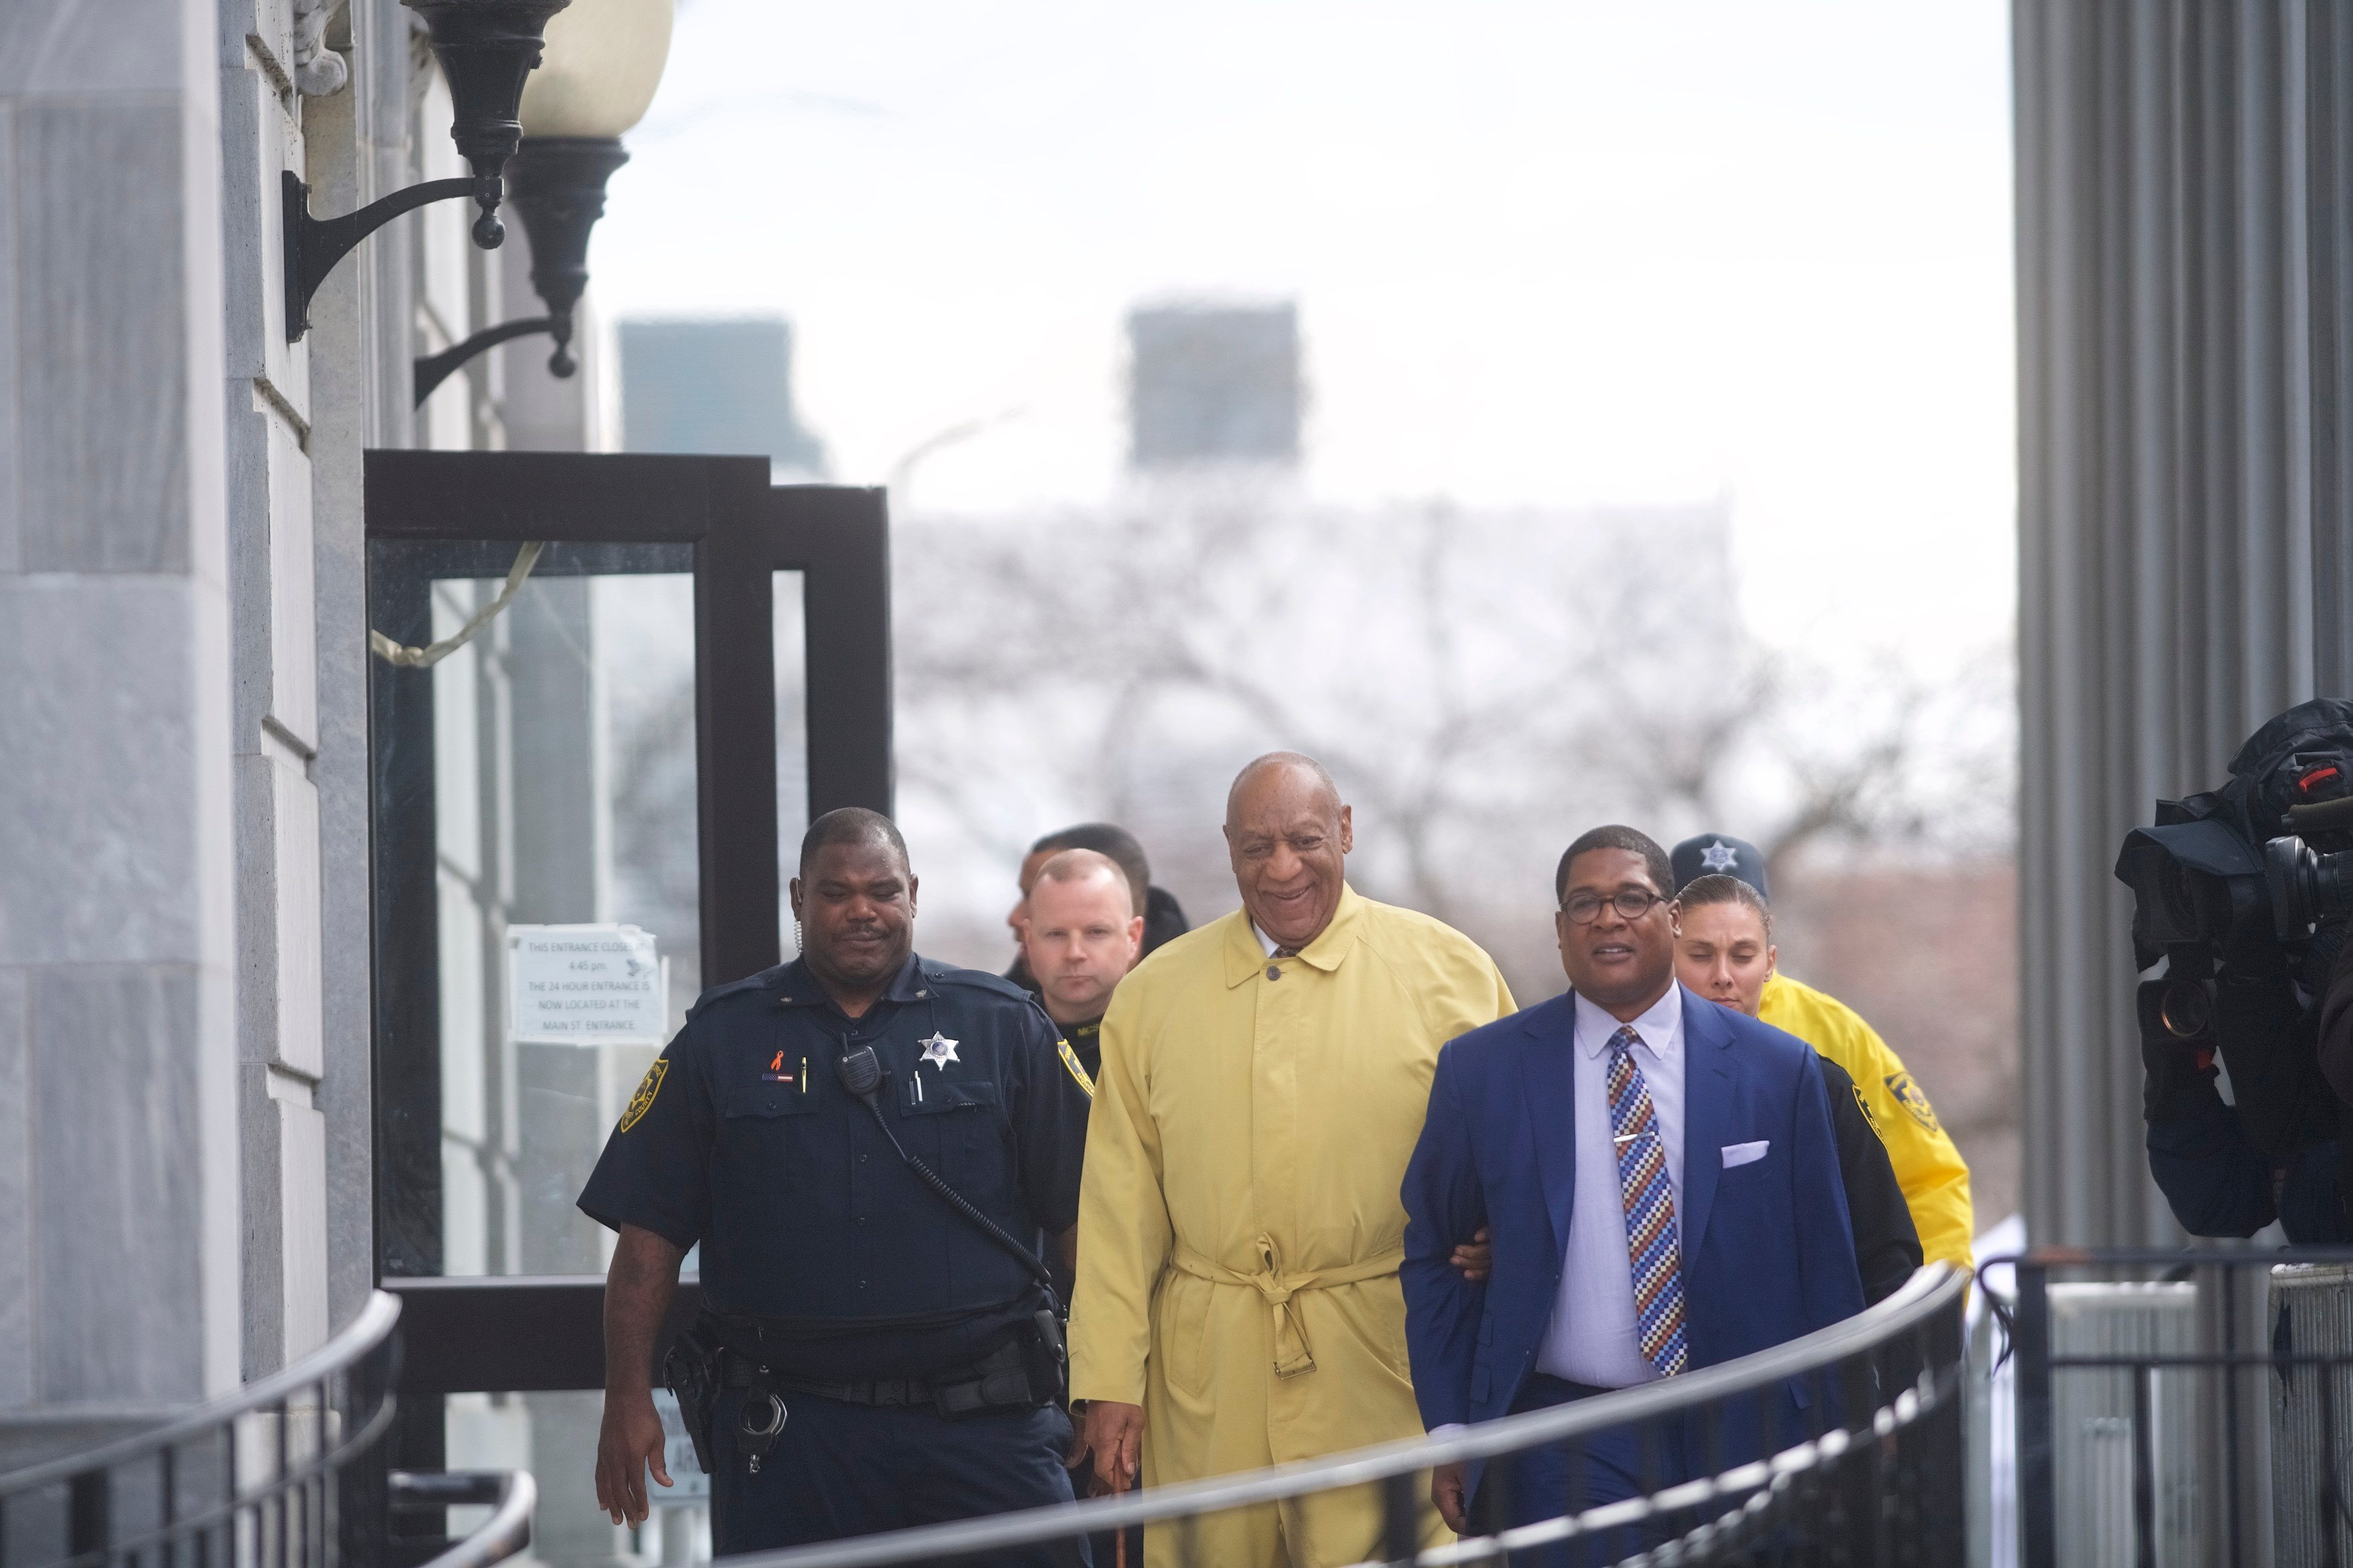 Bill Cosby departs the Montgomery County Courthouse after jury selection in his sexual assault retrial April 2 in Norristown, PA. More than 40 women have accused the 80 year old entertainer of sexual assault. (Photo by Mark Makela/Getty Images)